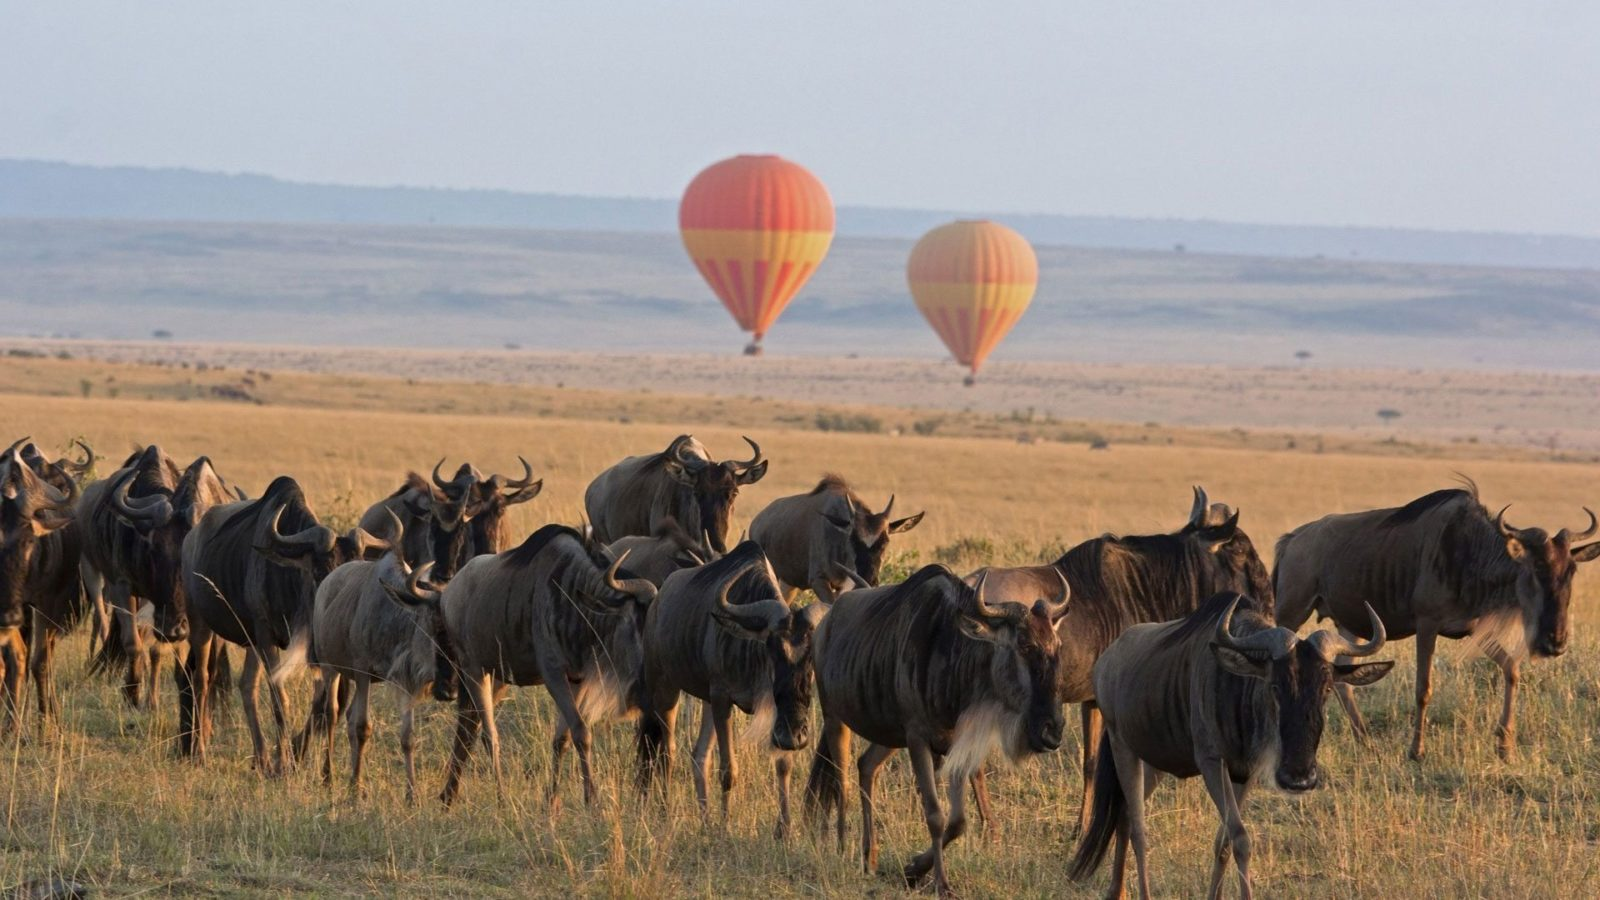 Serengeti-Balloon-Safari-andBeyond-Experience-1600x900